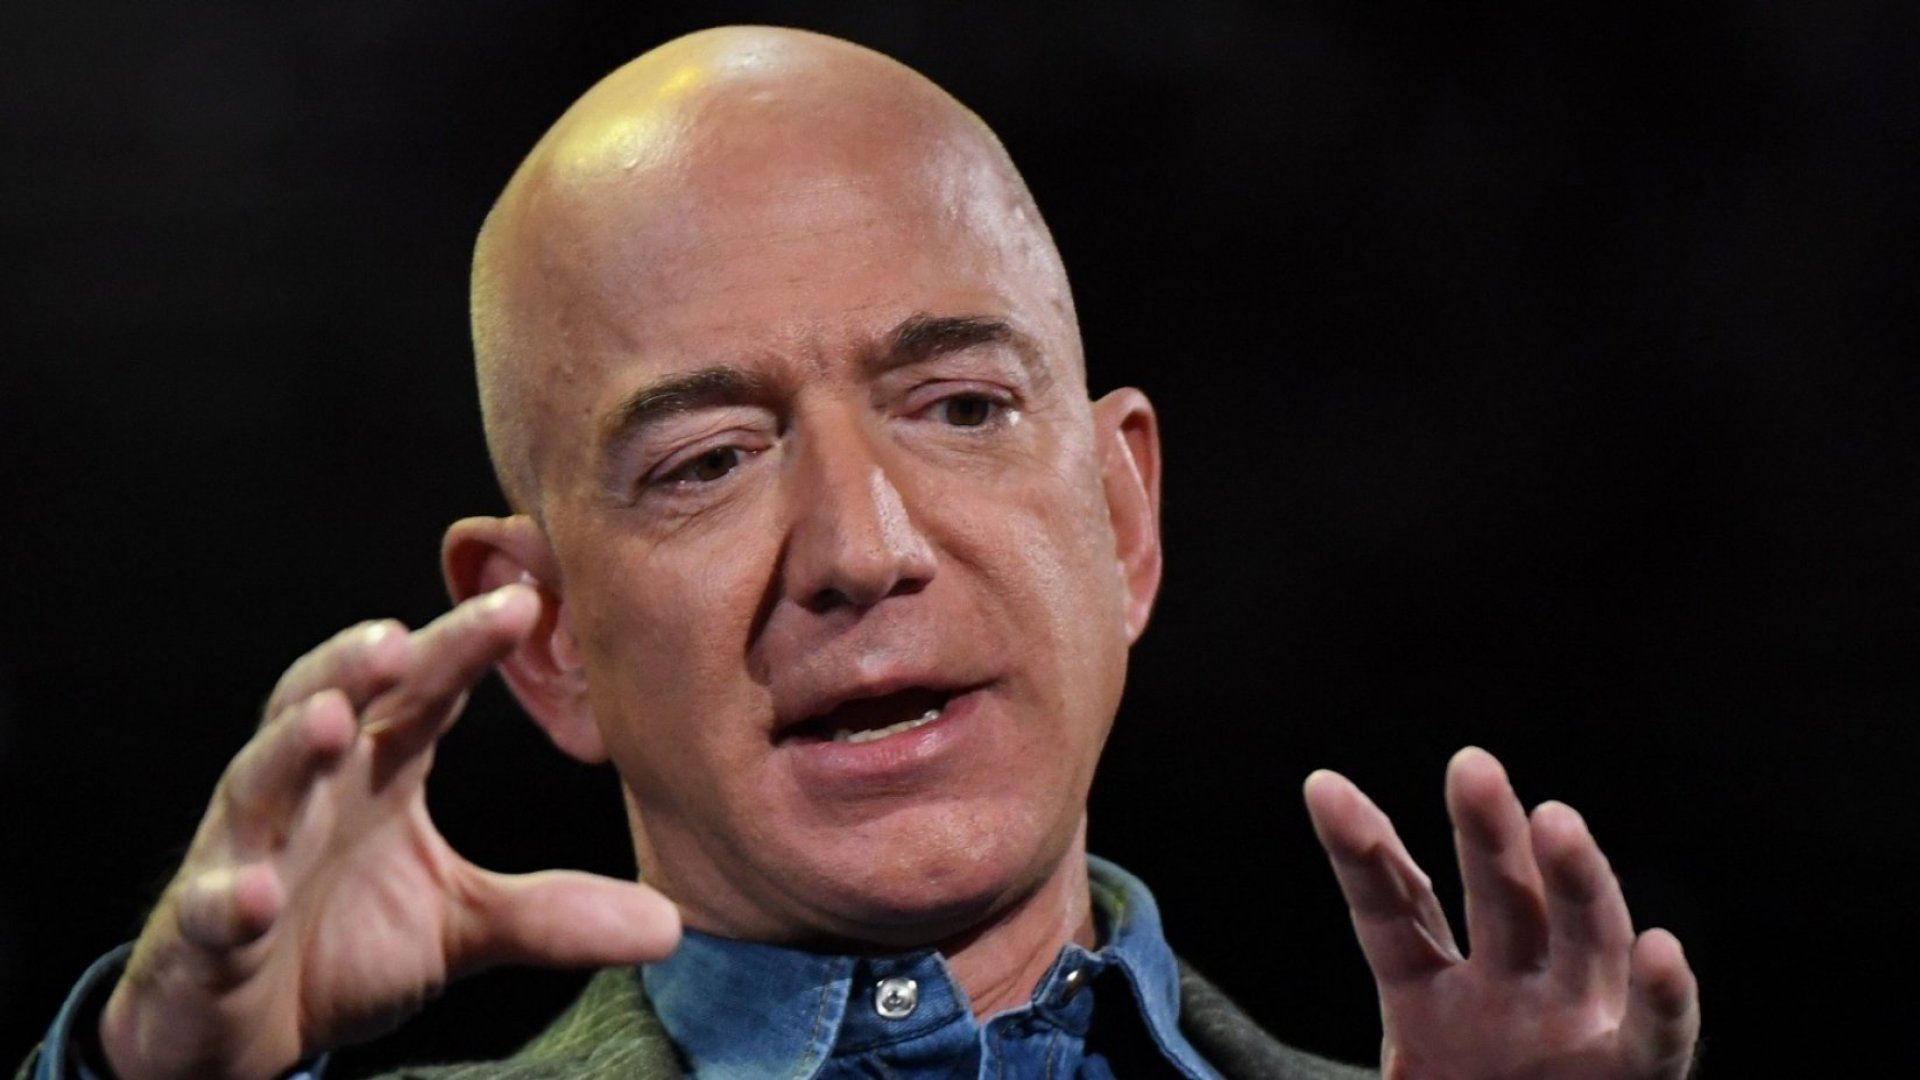 Jeff Bezos and Barack Obama Follow the Same Leadership Strategy, According to an Exec Who Worked for Both